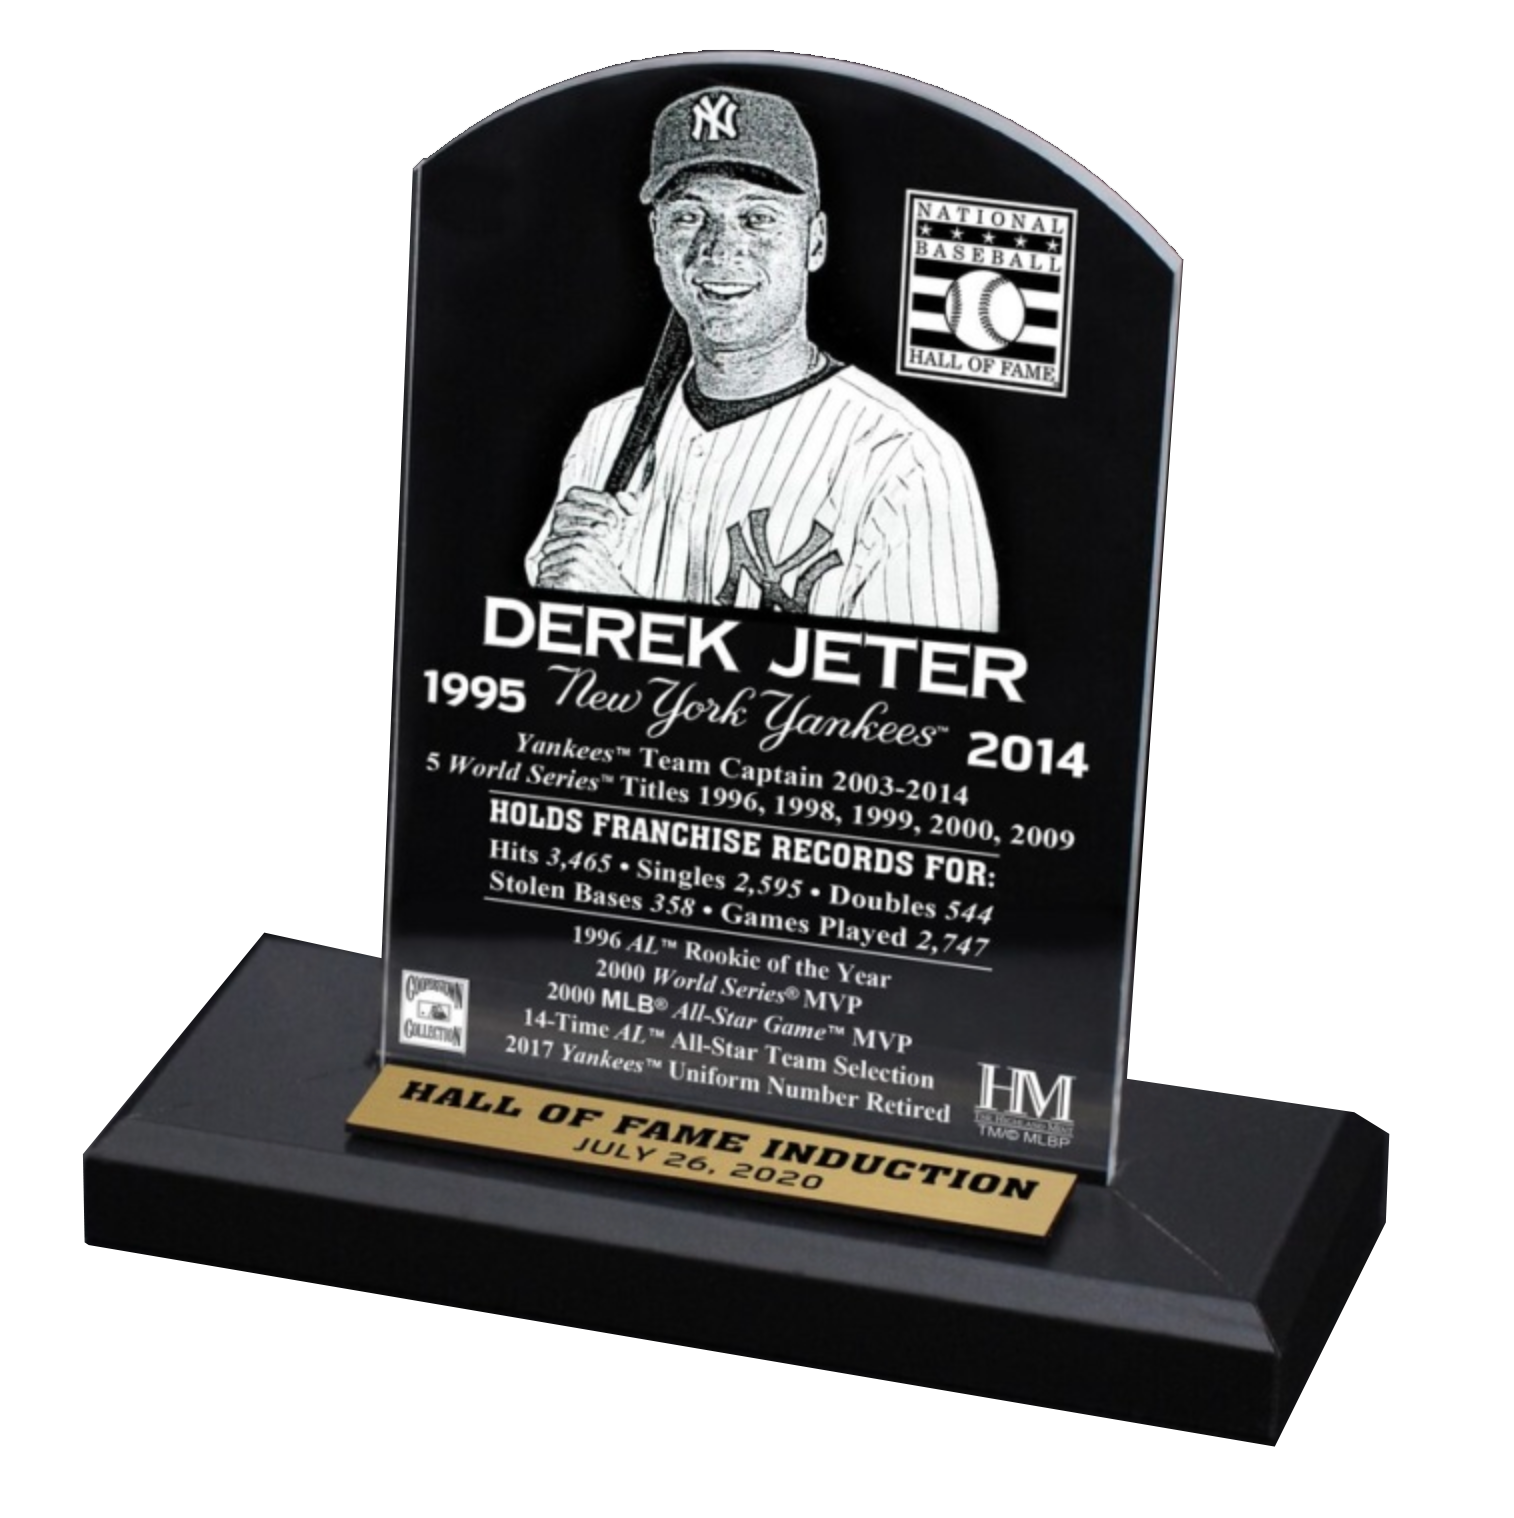 Derek Jeter New York Yankees Highland Mint 2020 Hall of Fame Induction Etched Plaque